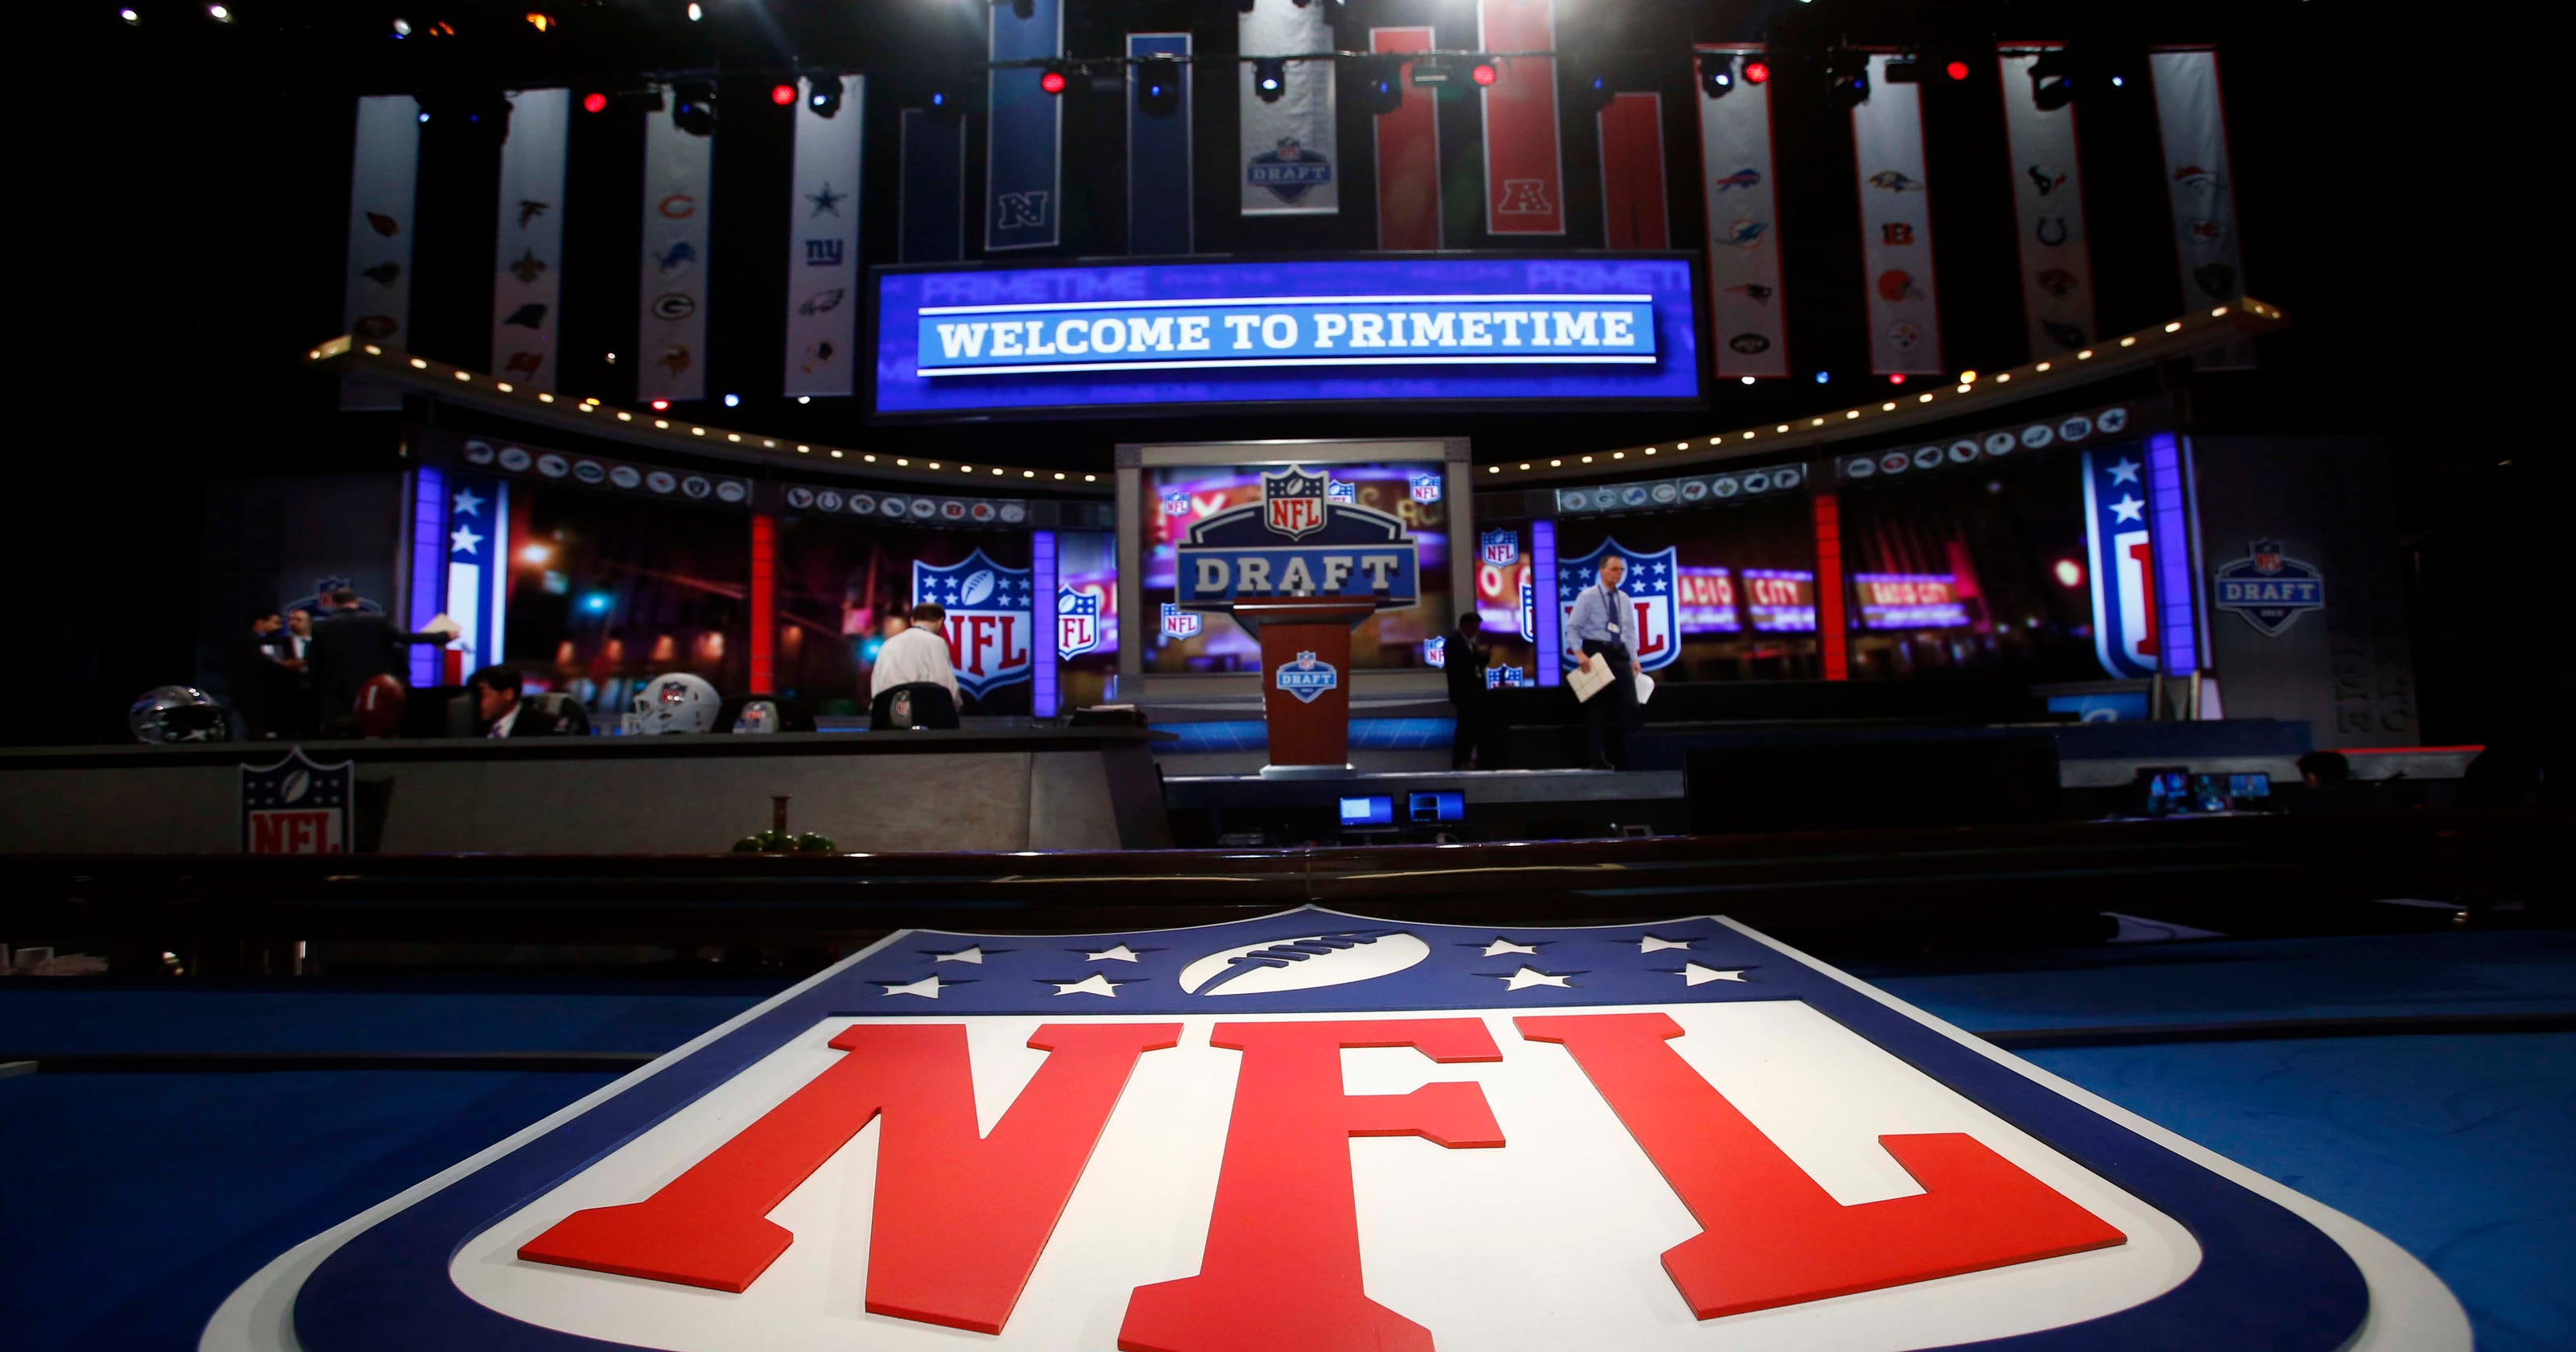 Rams News Now >> Complete 2016 NFL draft order: Rams land top pick